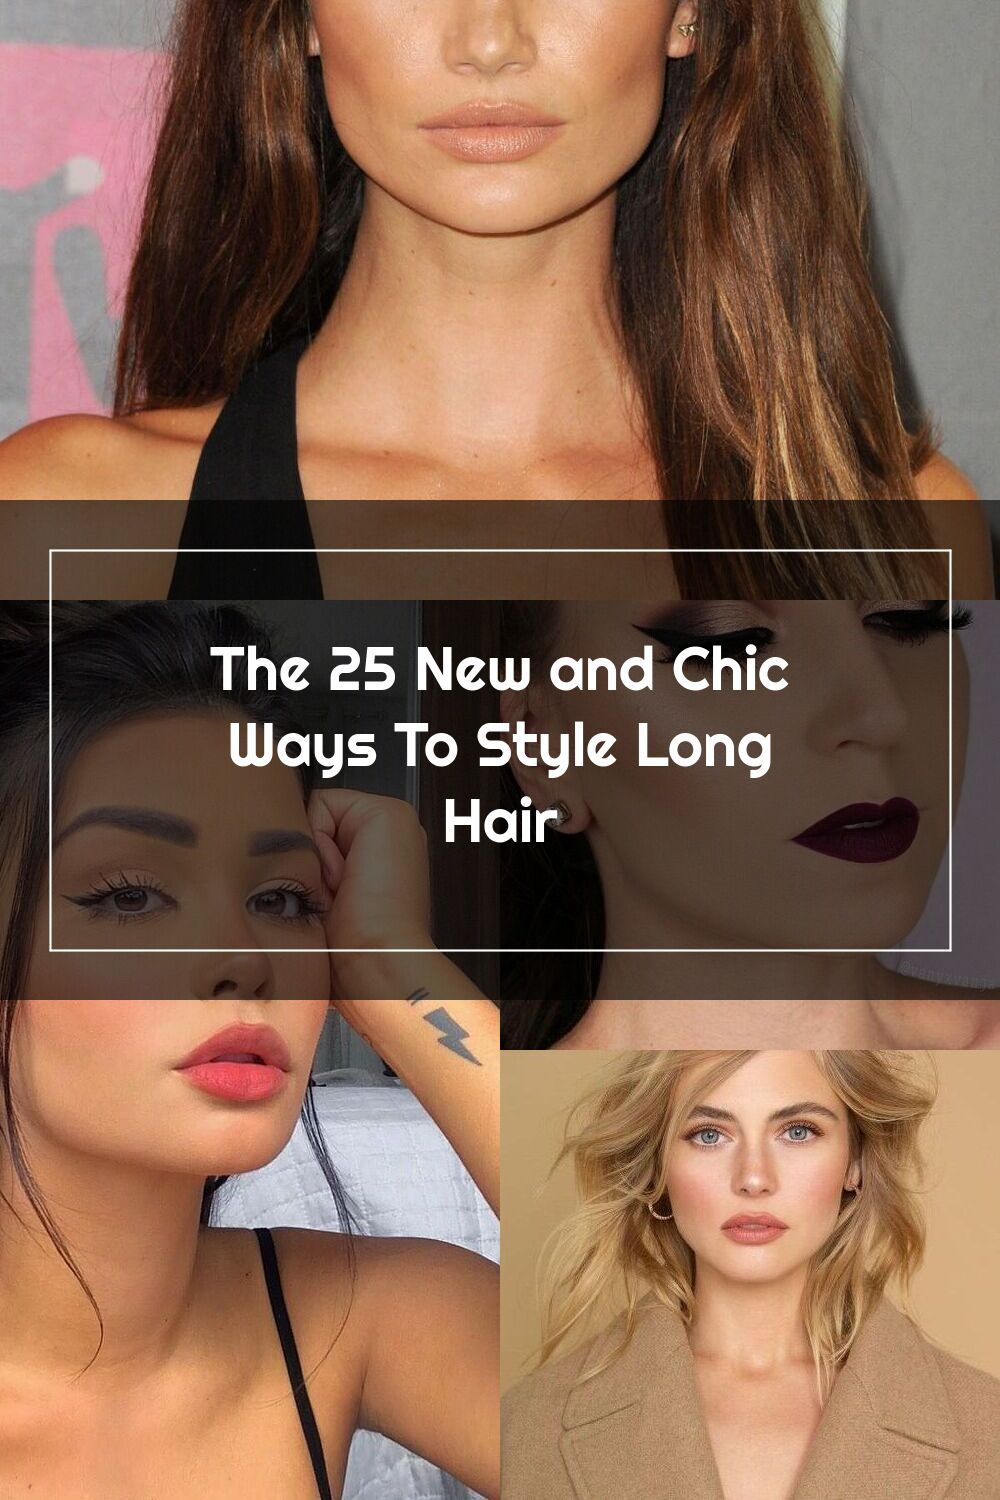 20 Long Hairstyles We Love 2015 Best Haircuts For Long Hair In 2020 Haircuts For Long Hair Cool Haircuts Long Hair Styles